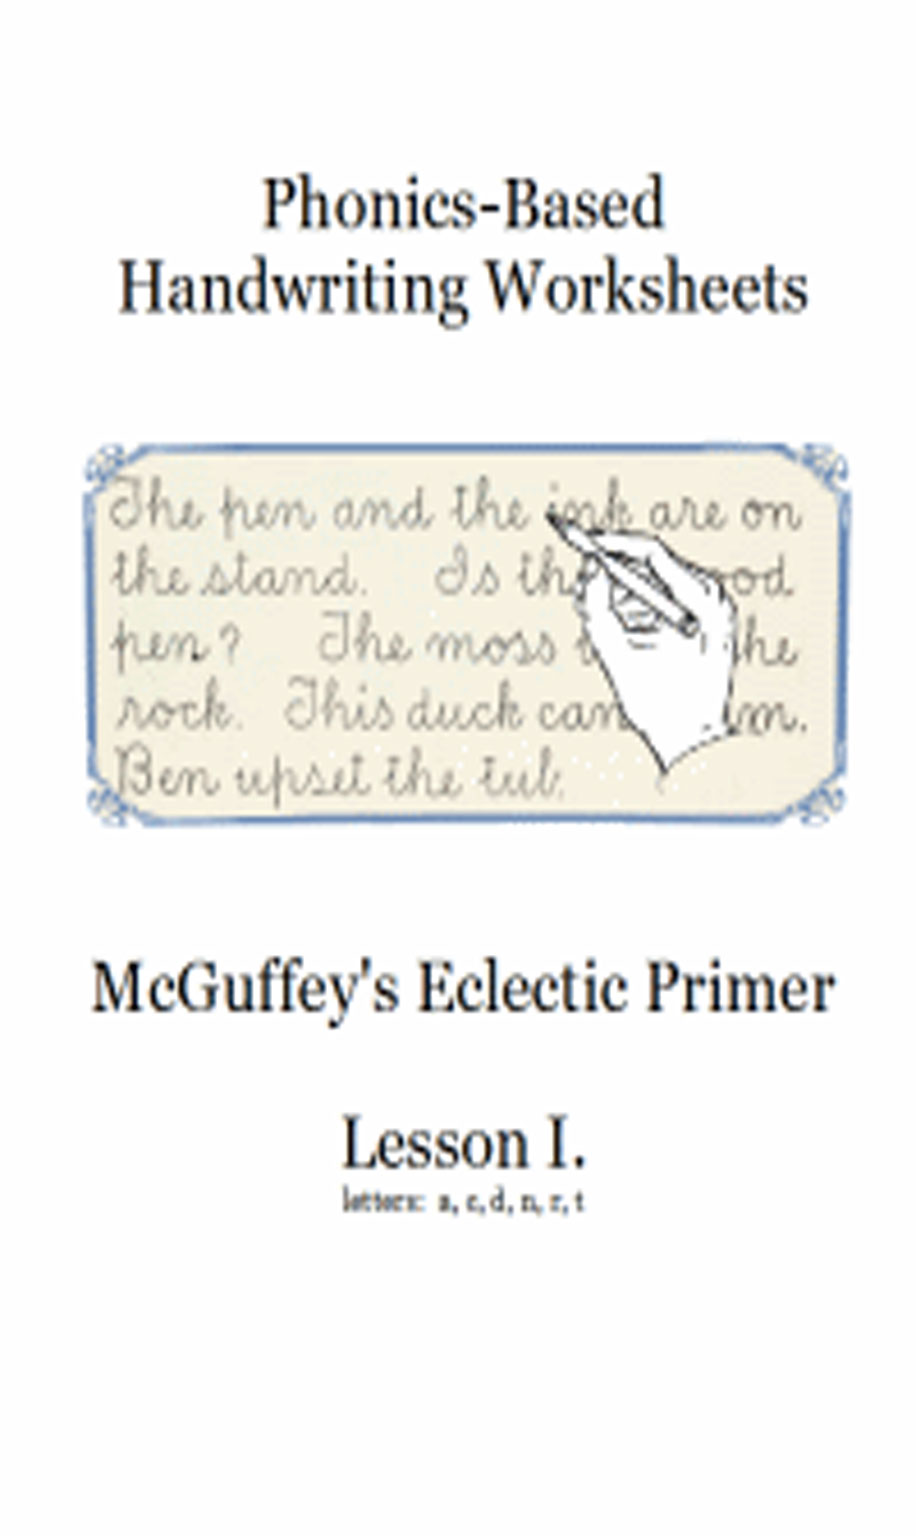 This is an example of a handwriting prompt that students would have copied to work on their handwriting.